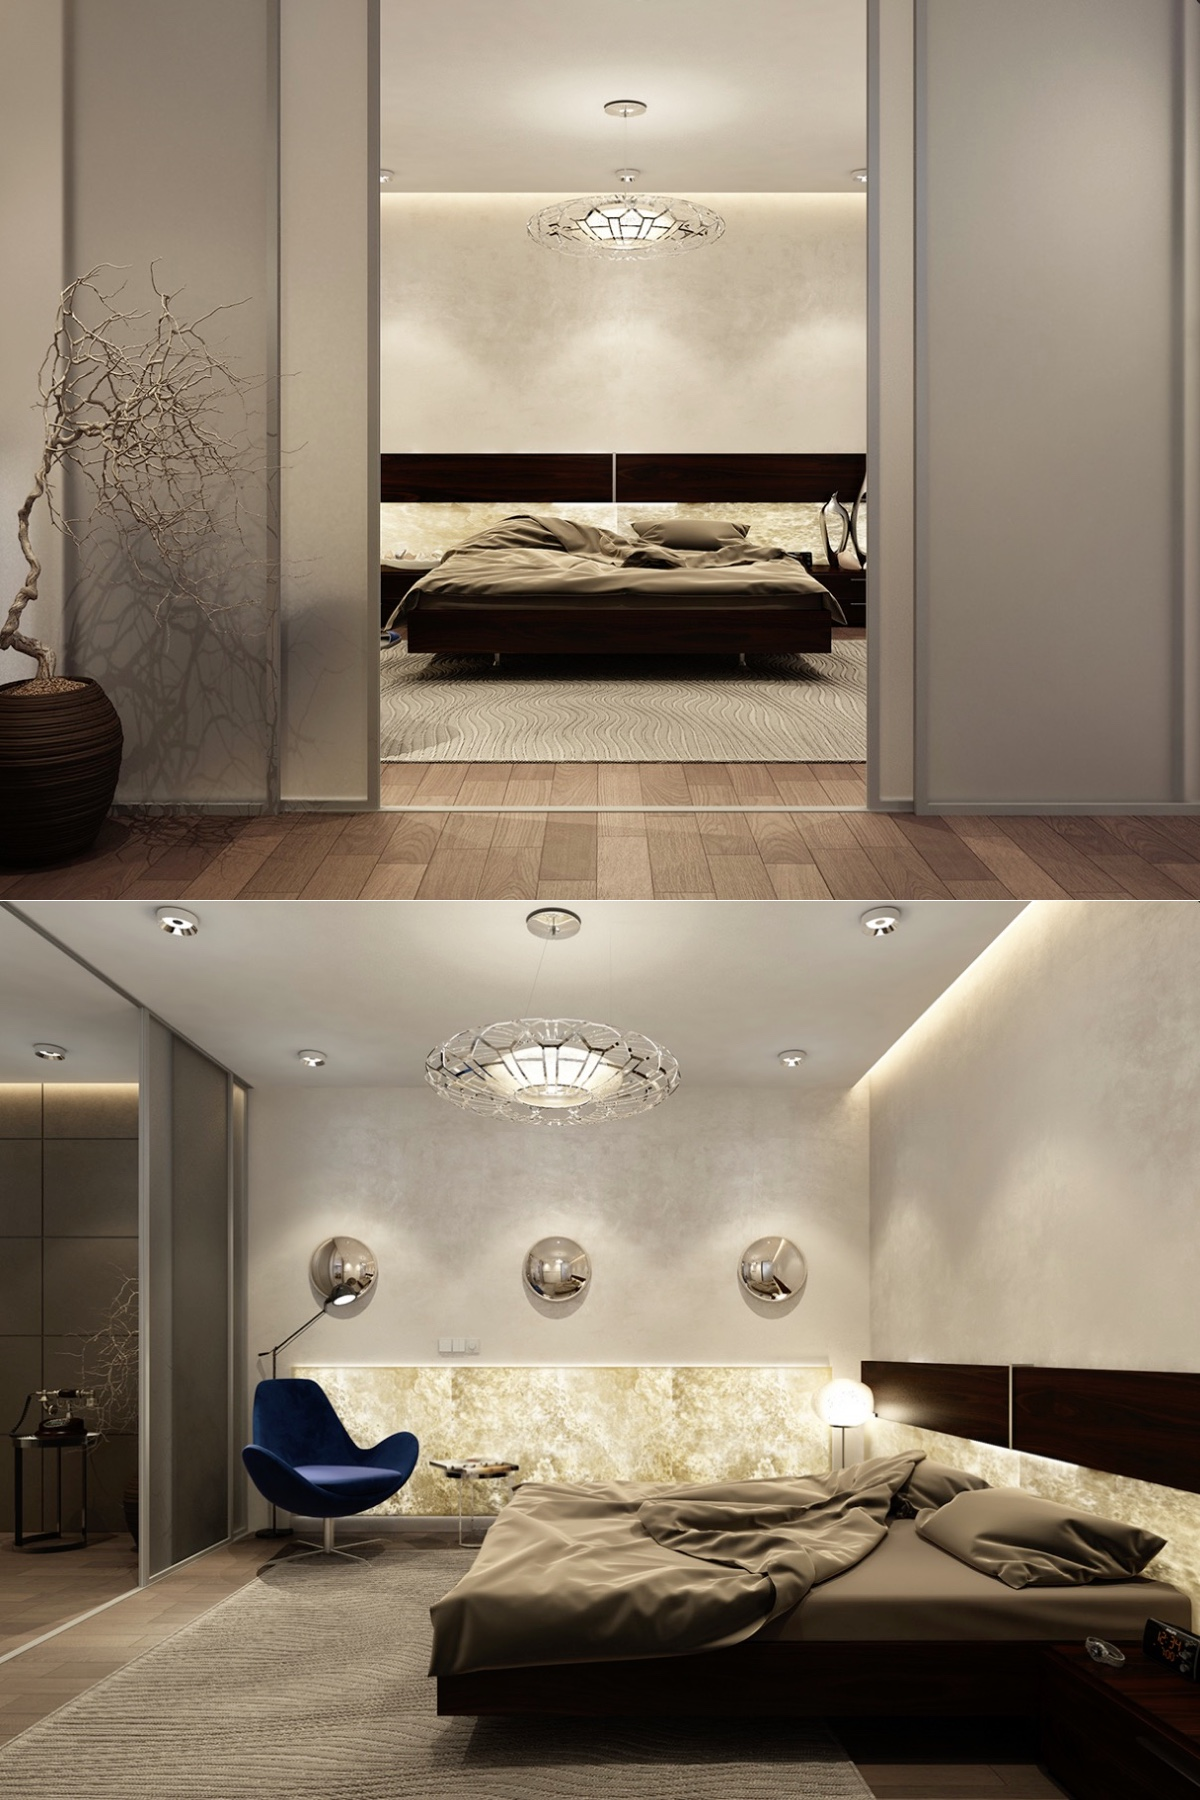 Cool Wall Designs For Bedrooms 21 cool bedrooms for clean and simple design inspiration